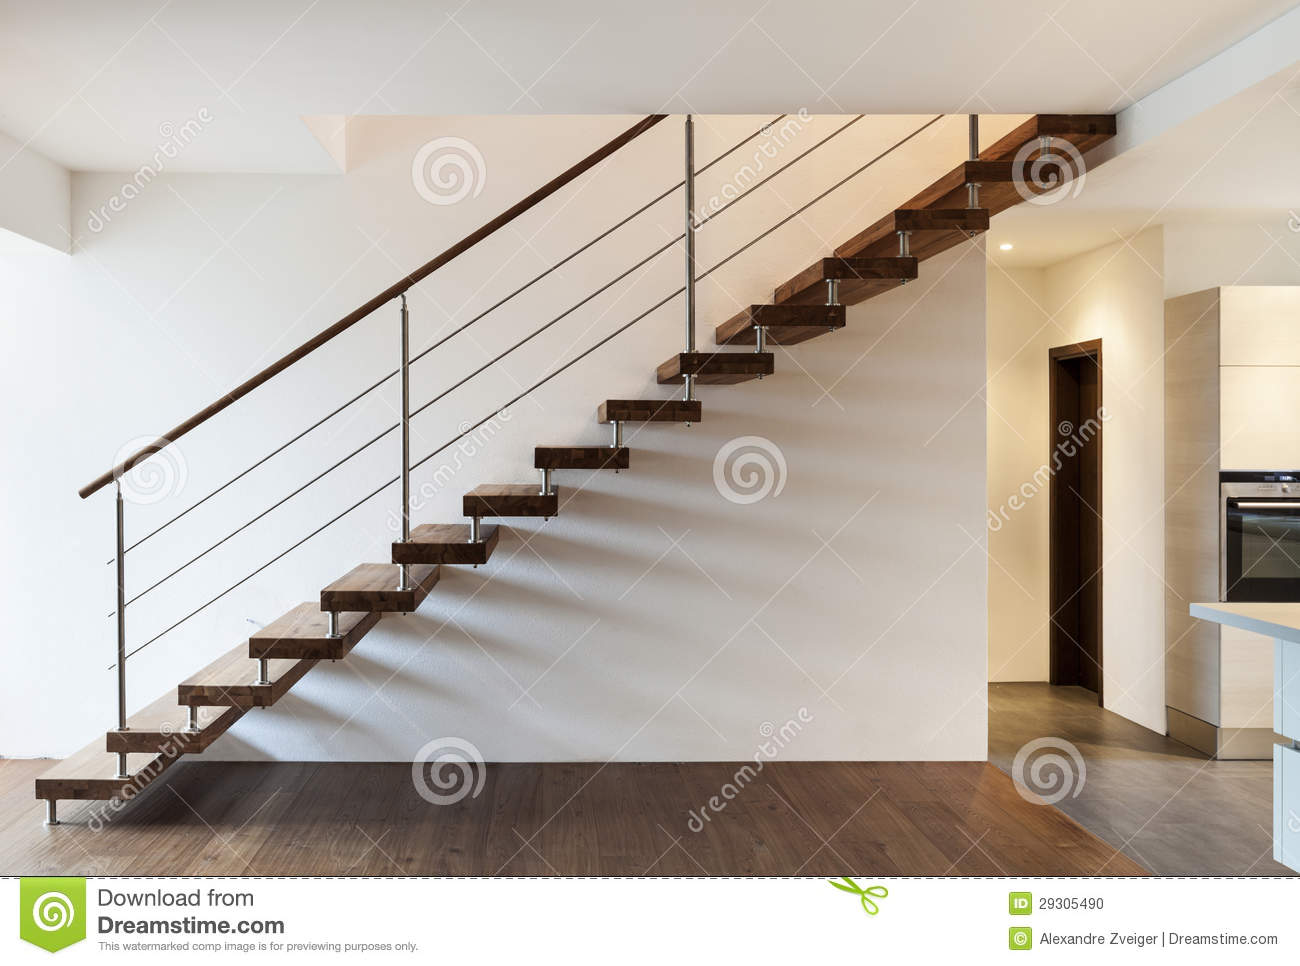 Escalier int rieur photo stock image du vide acier for Design escalier interieur